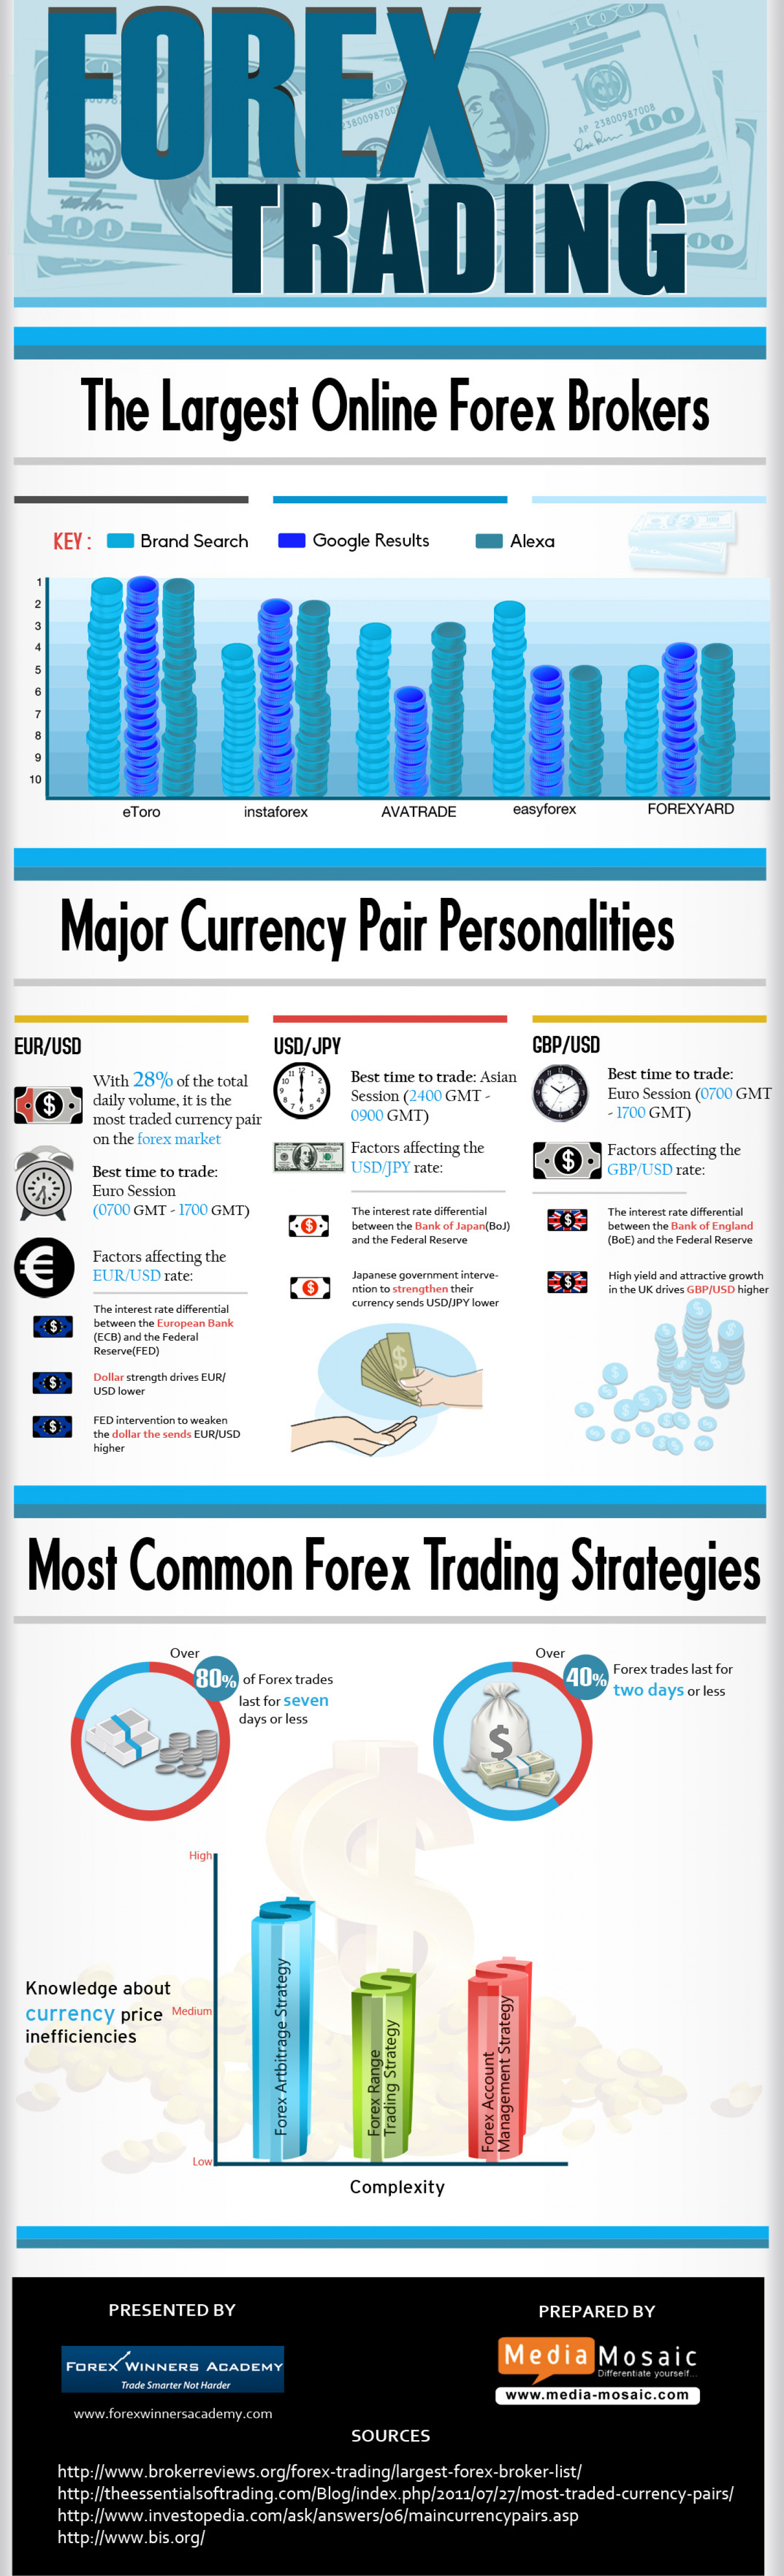 Where to trade forex online